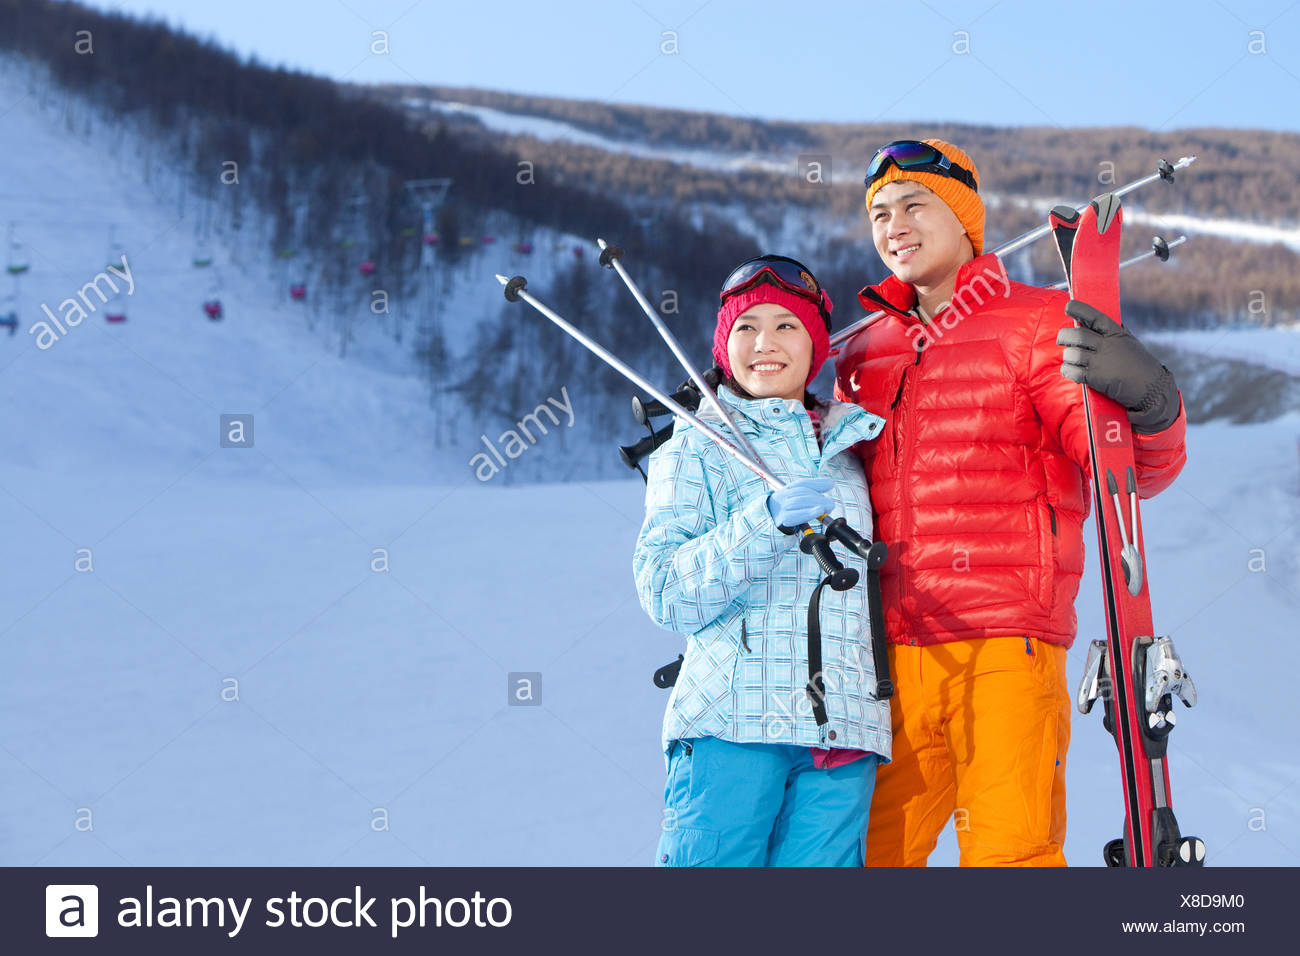 Young couple in ski resort - Stock Image